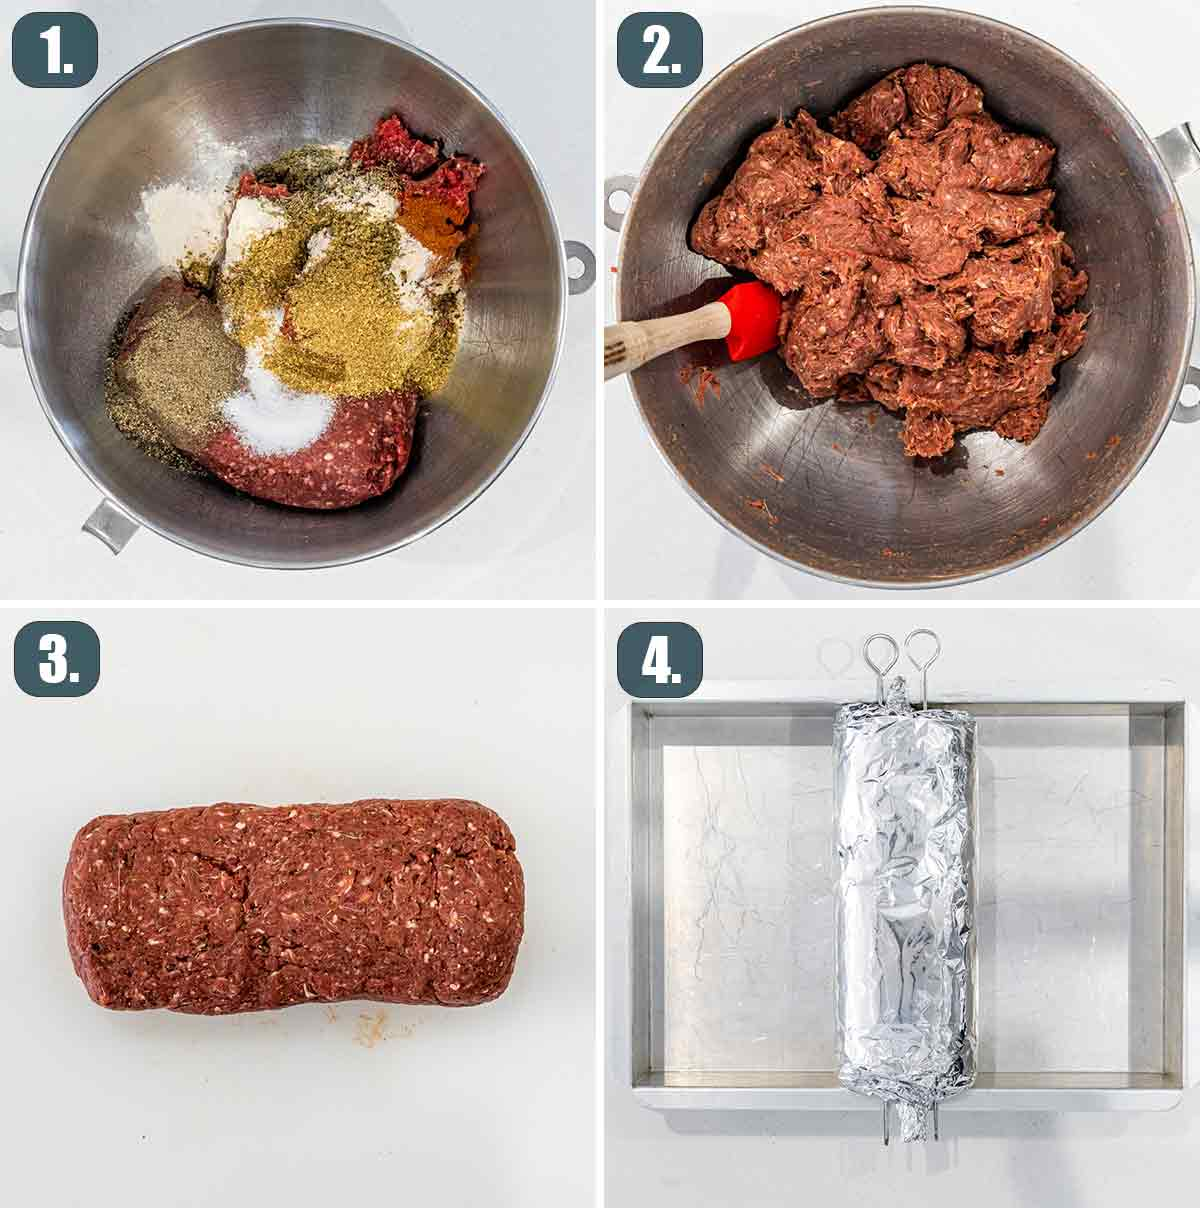 process shots showing how to make meat for halifax donair.